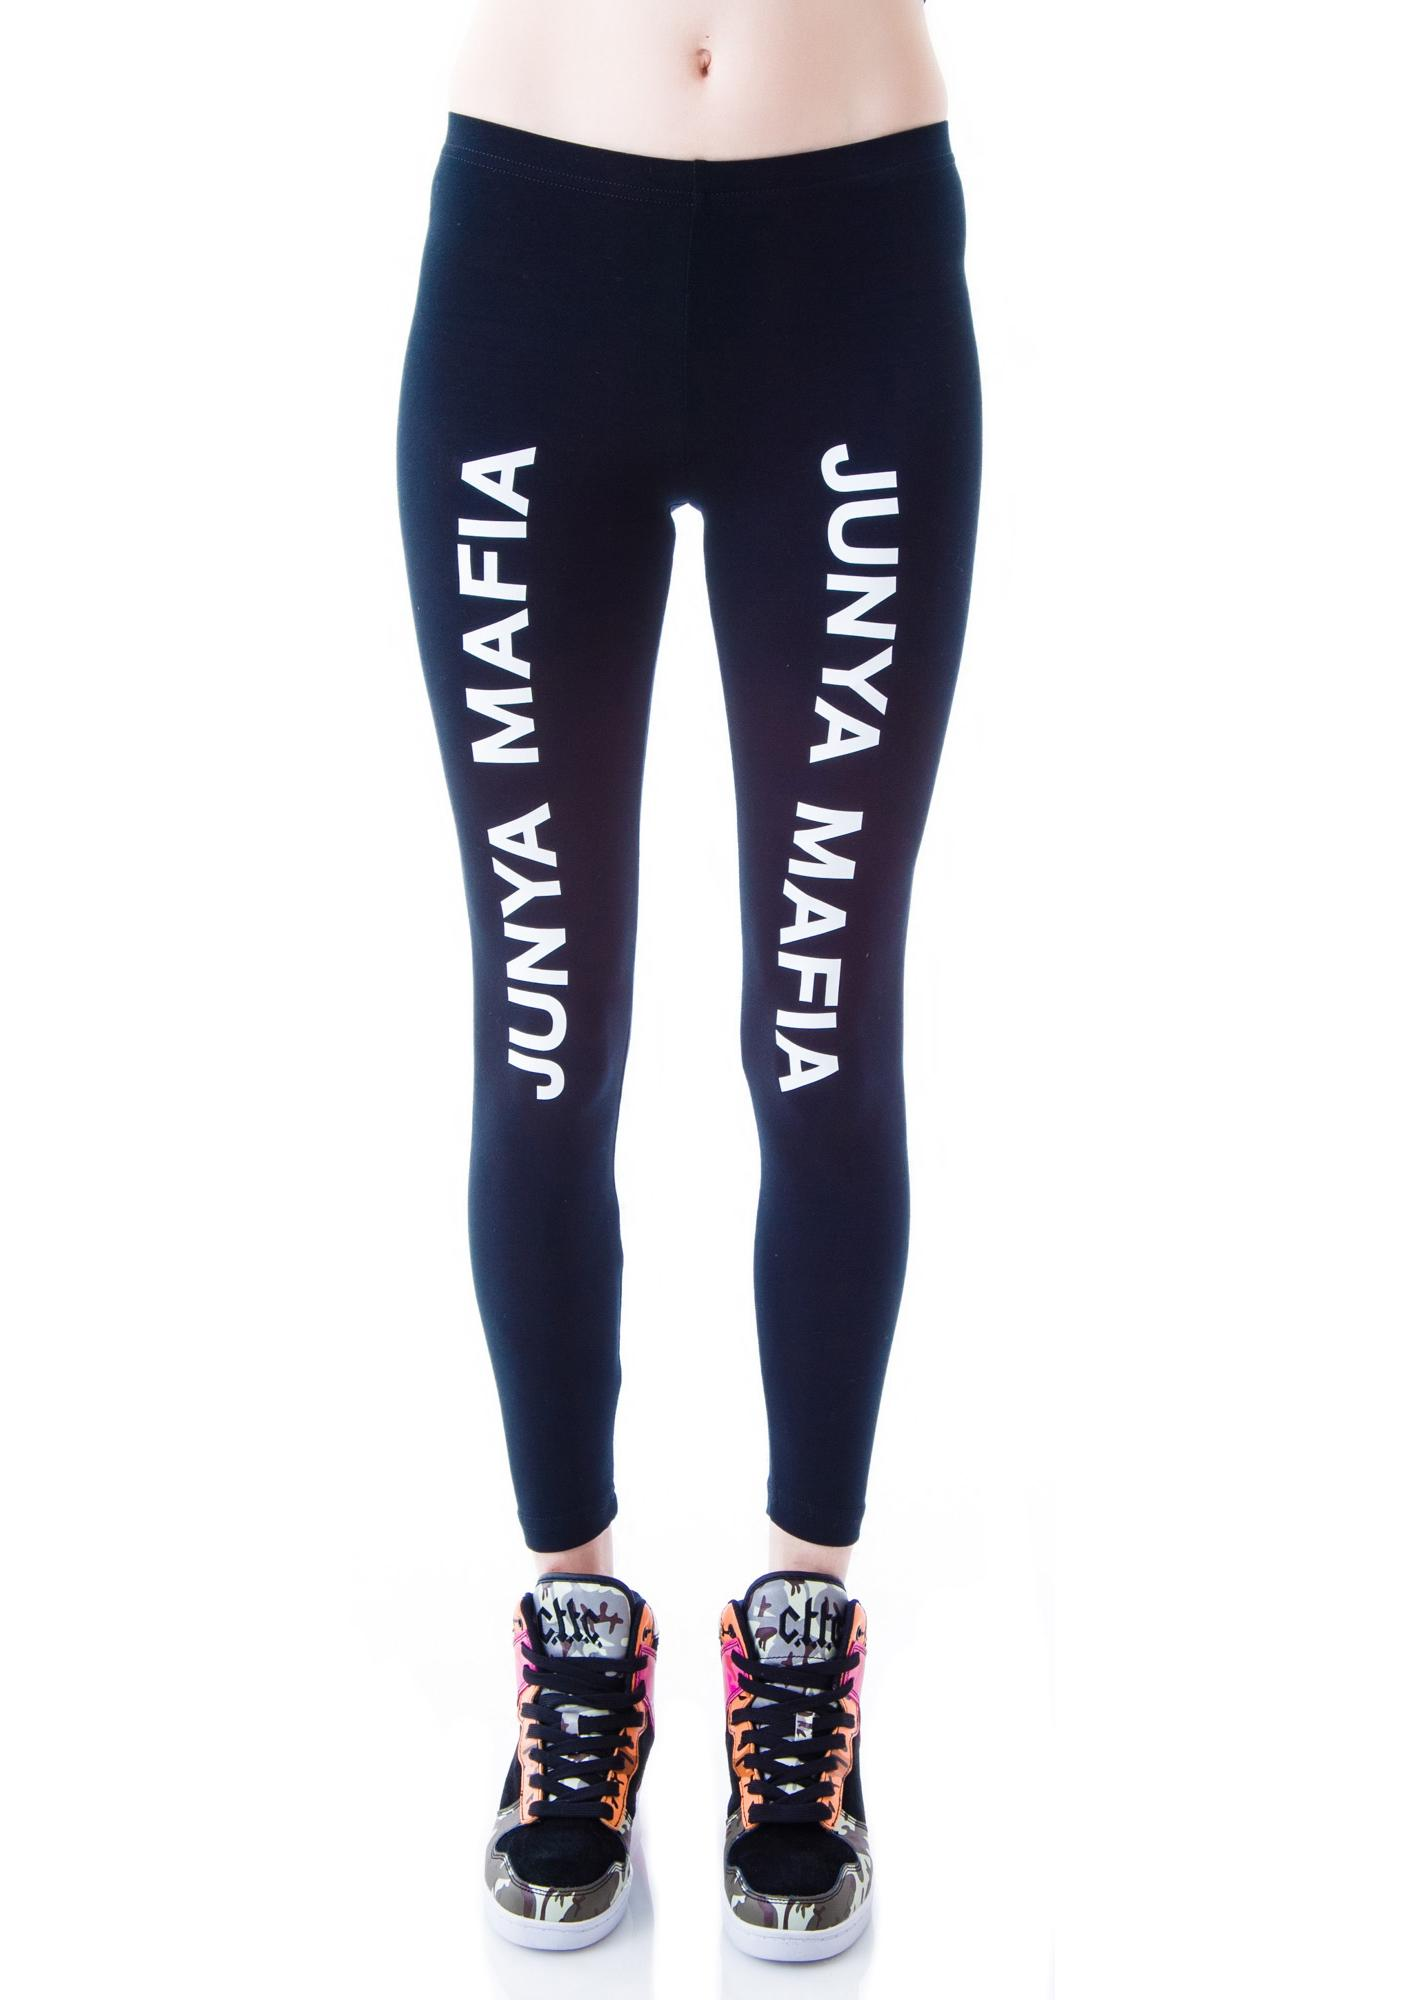 Names Leggings